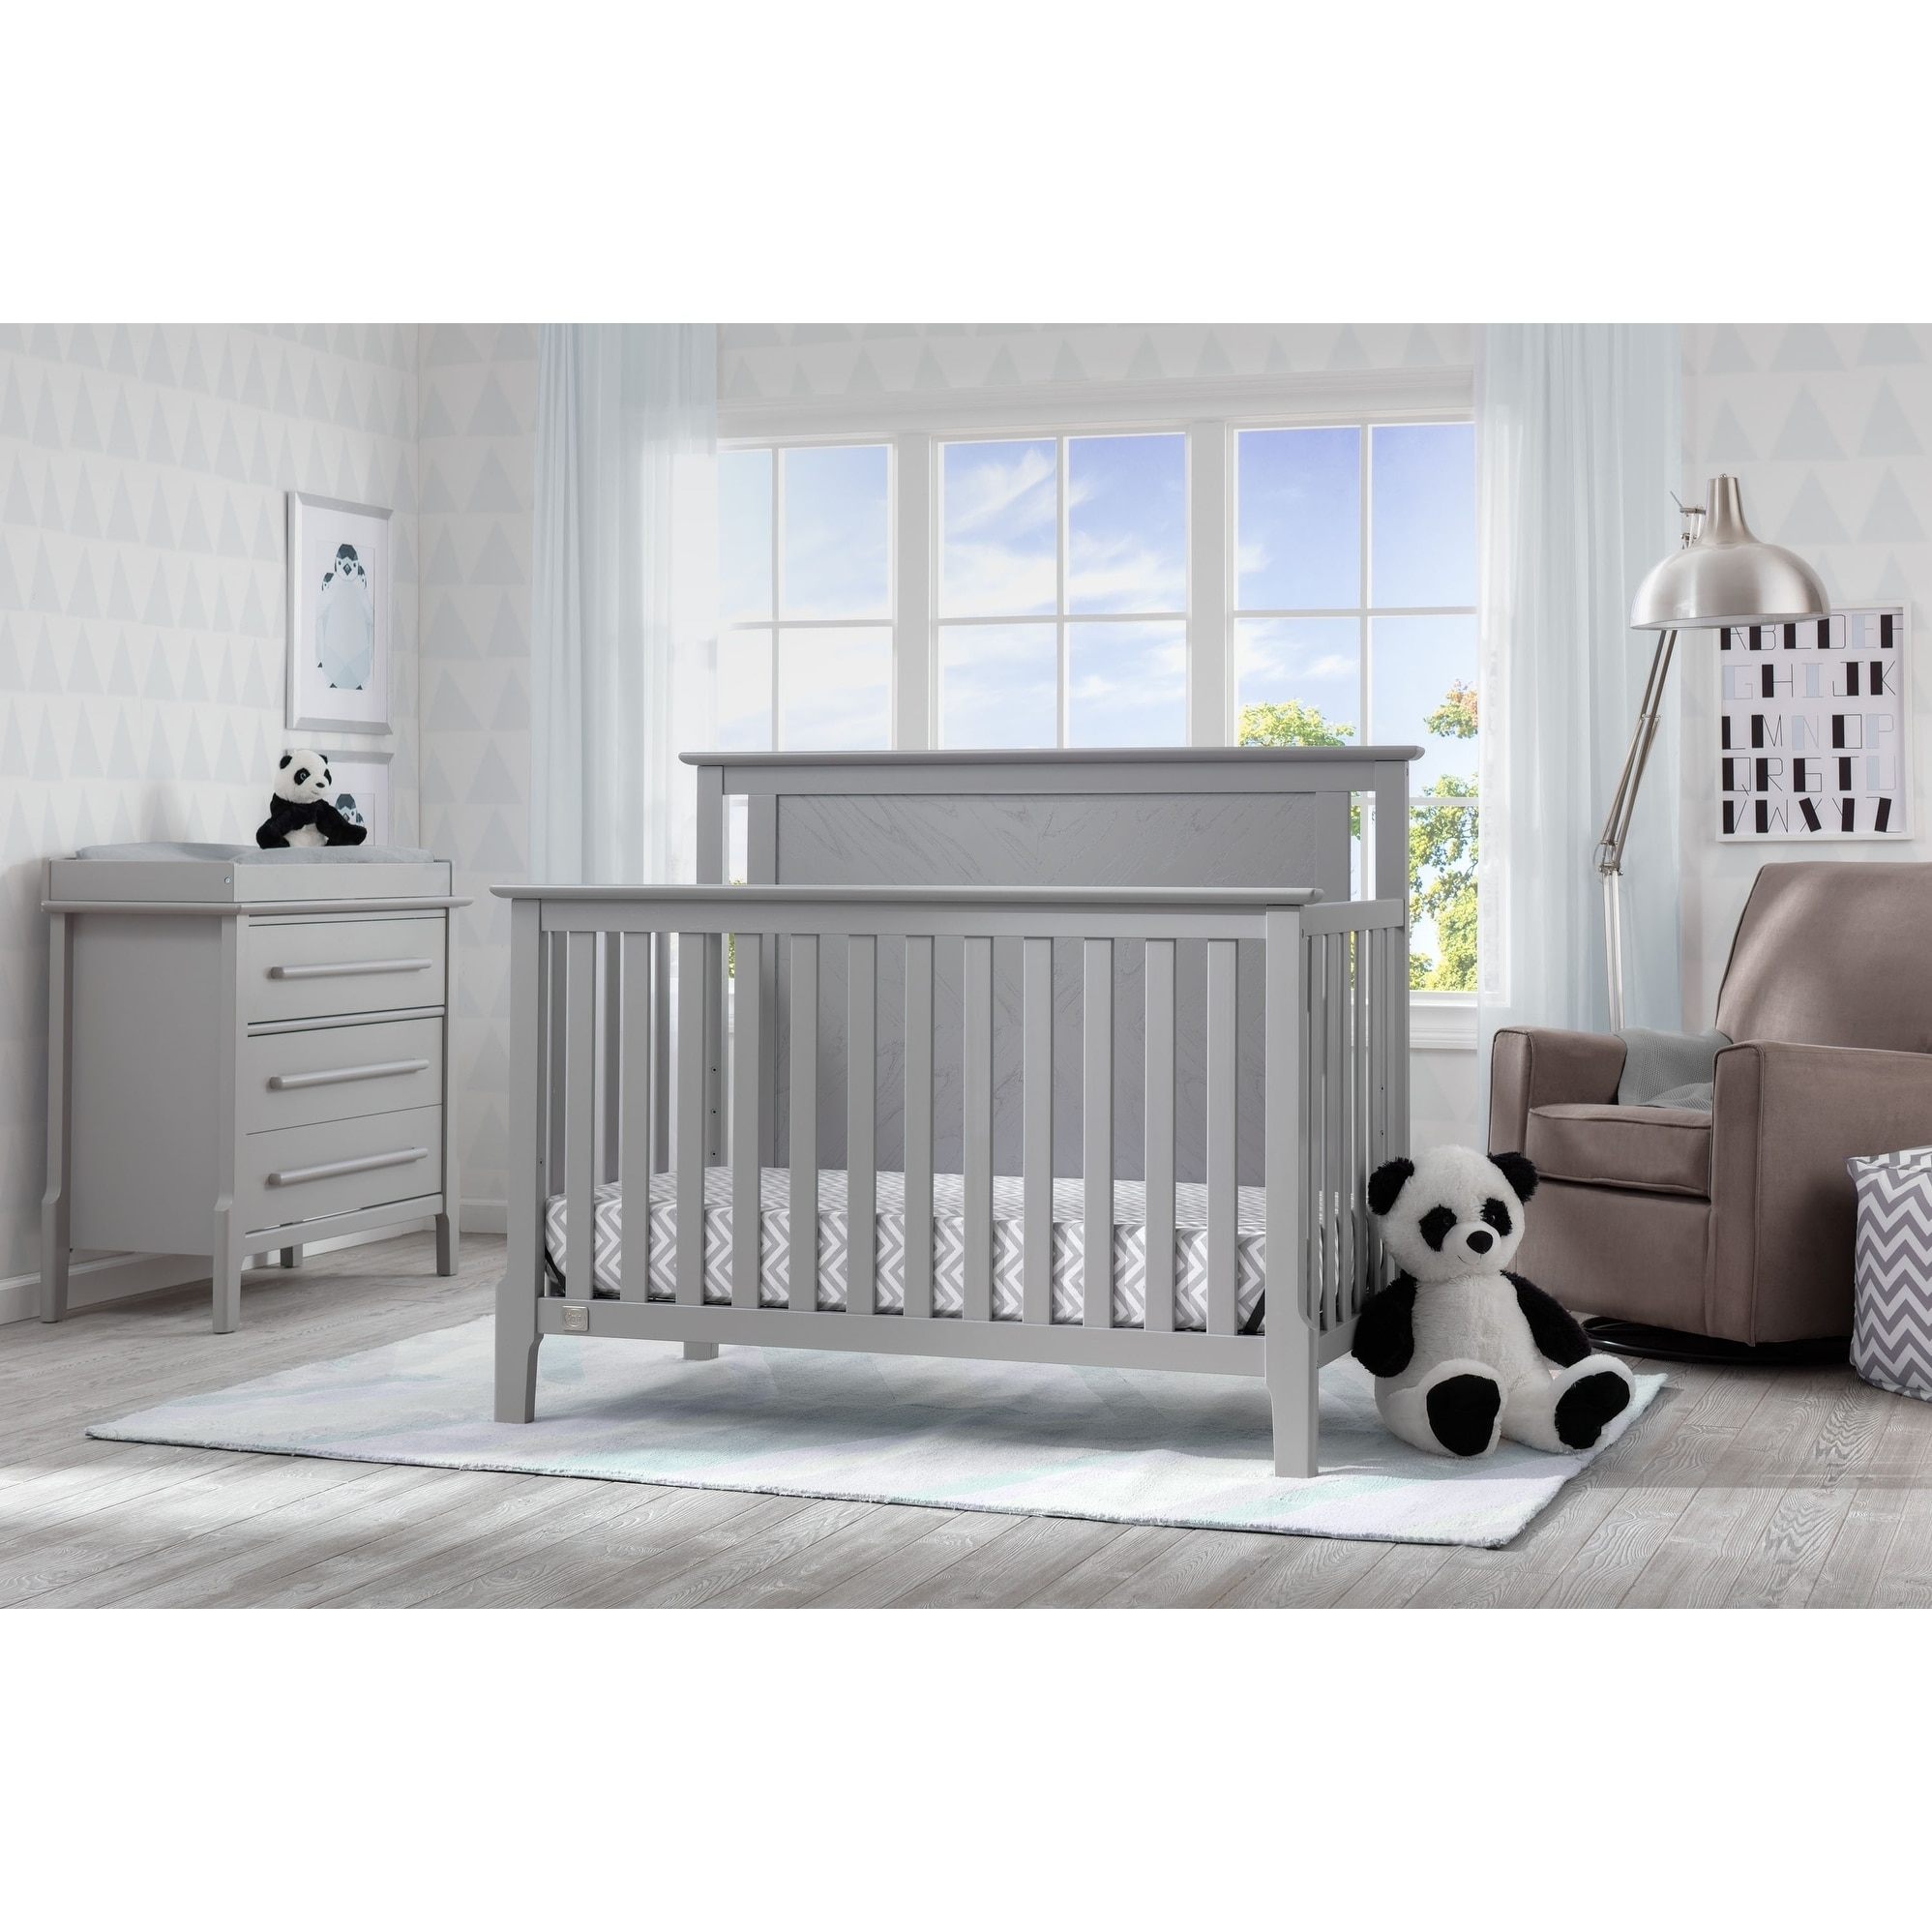 Details About Serta Mid Century Modern Lifestyle 4 In 1 Convertible Crib Grey